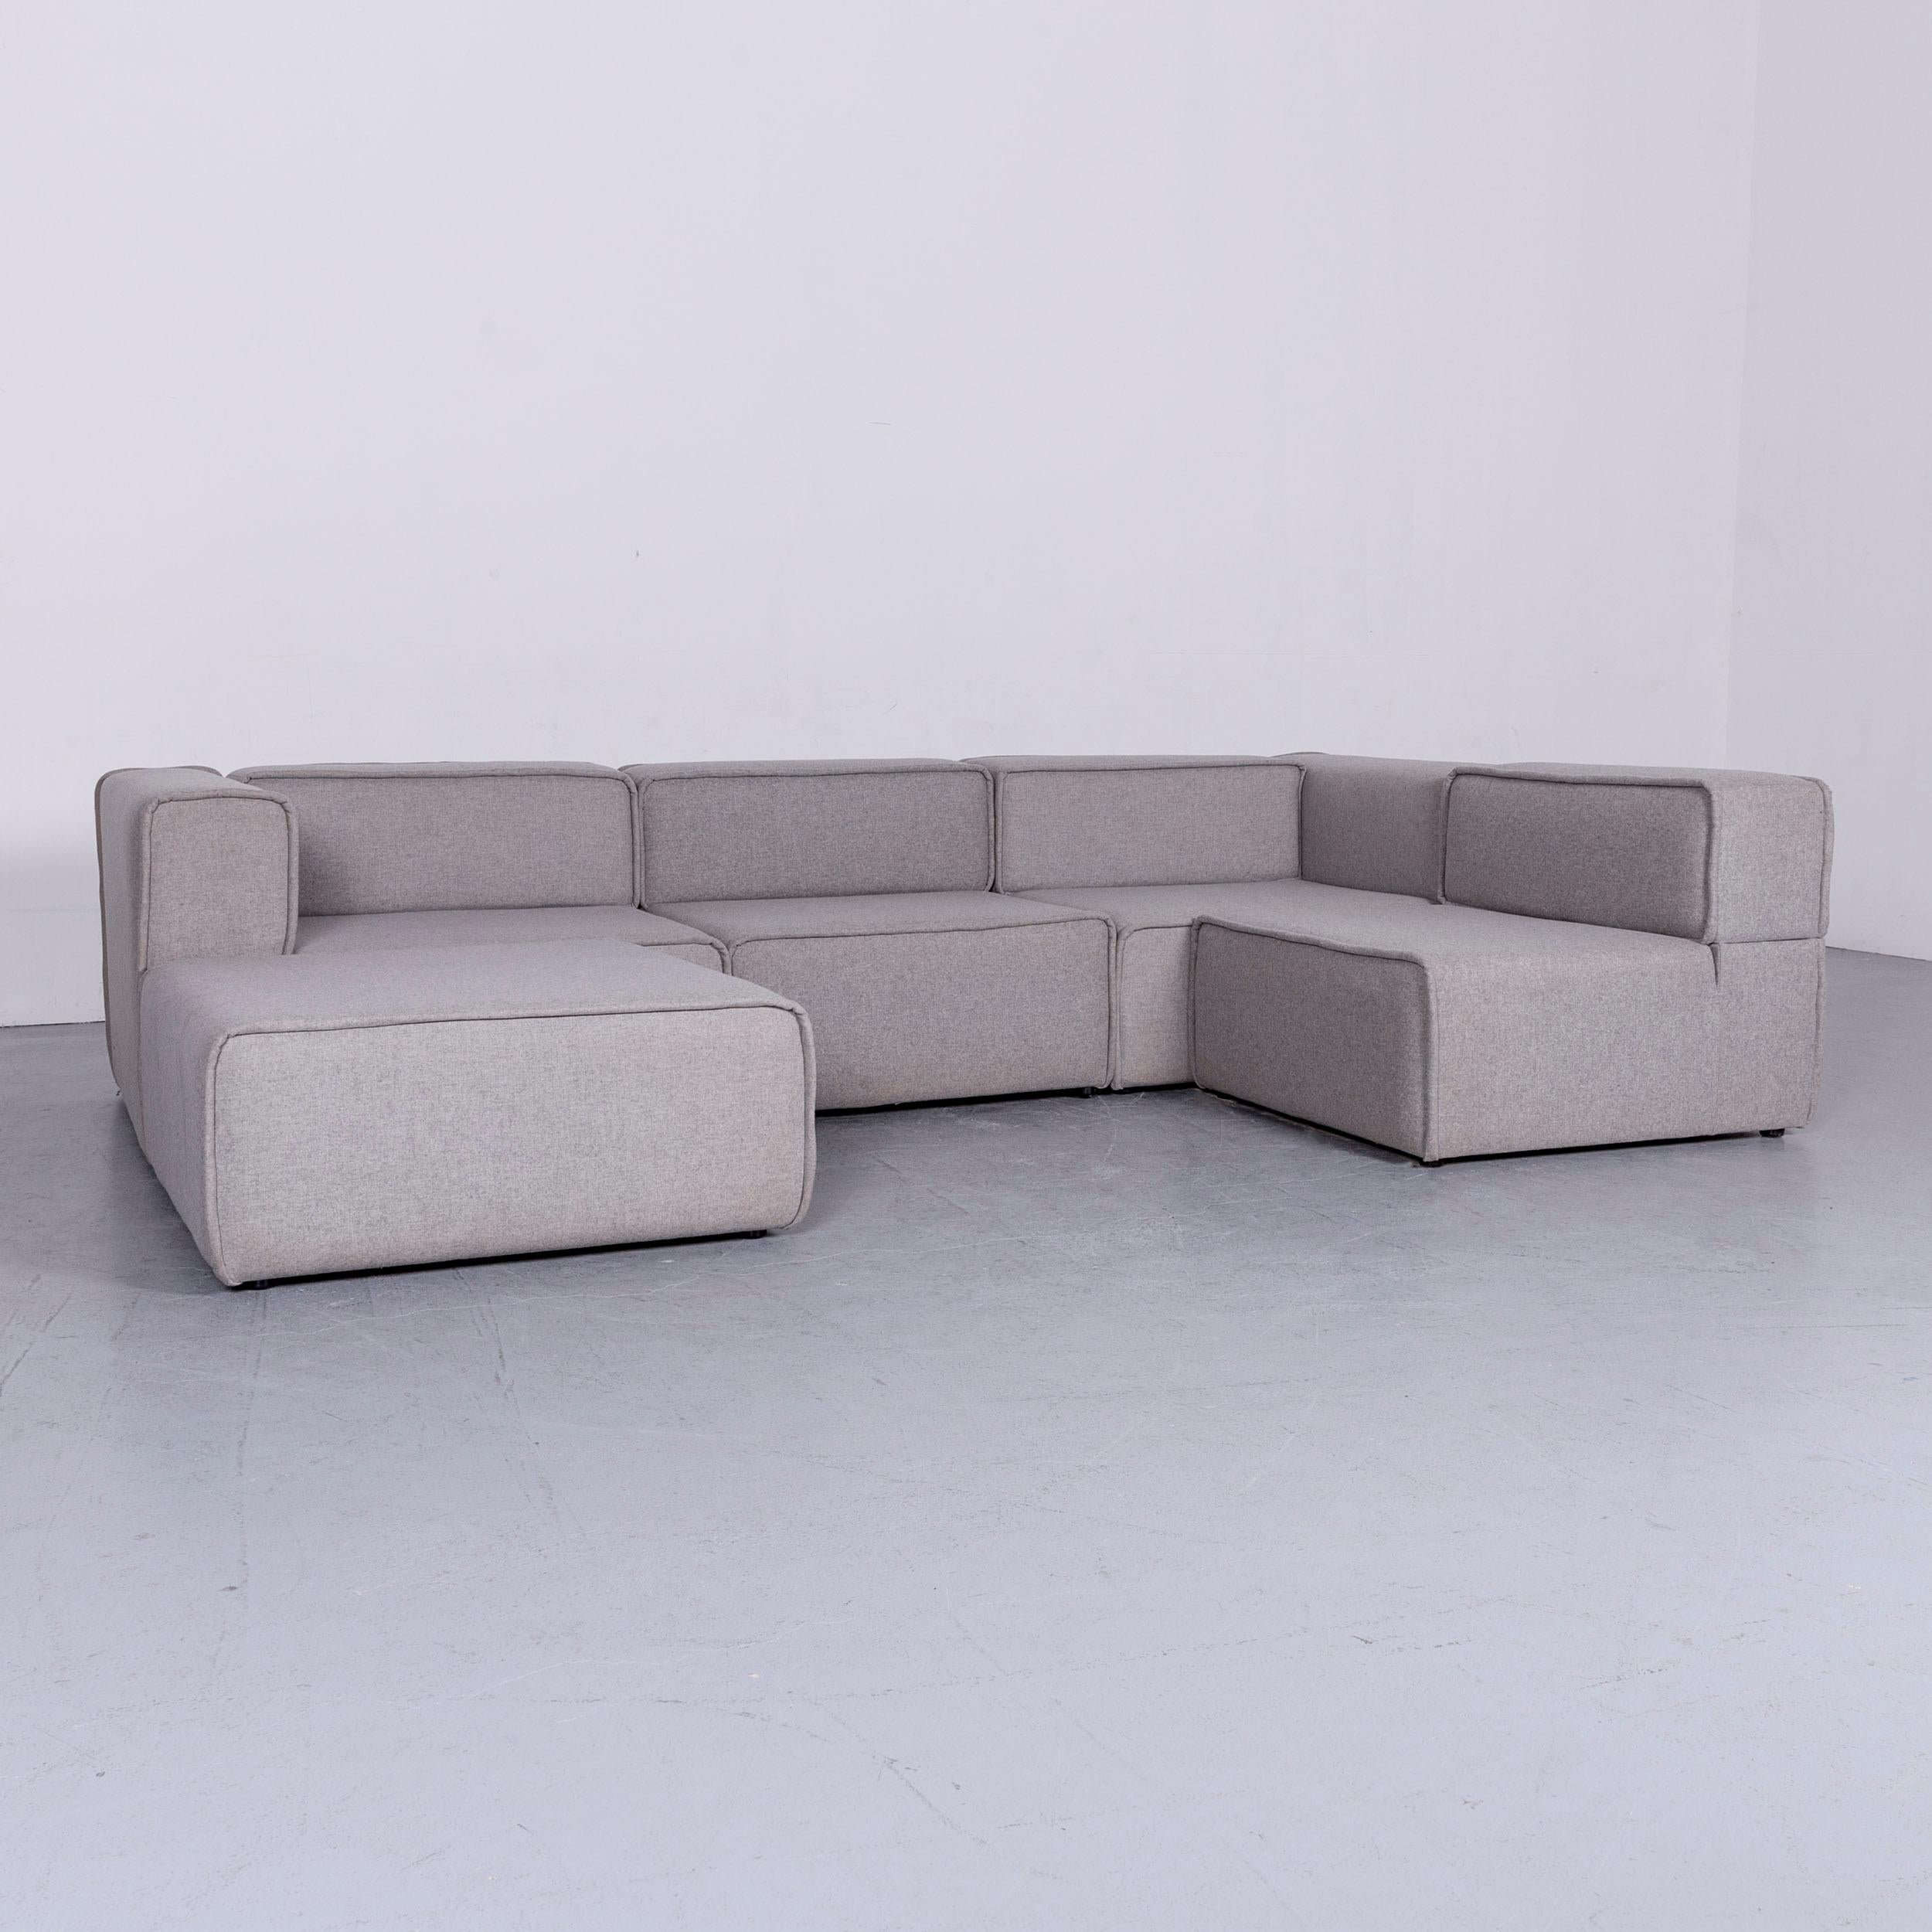 We Bring To You An BoConcept Carmo Designer Fabric Sofa Grey Corner Sofa  Couch.